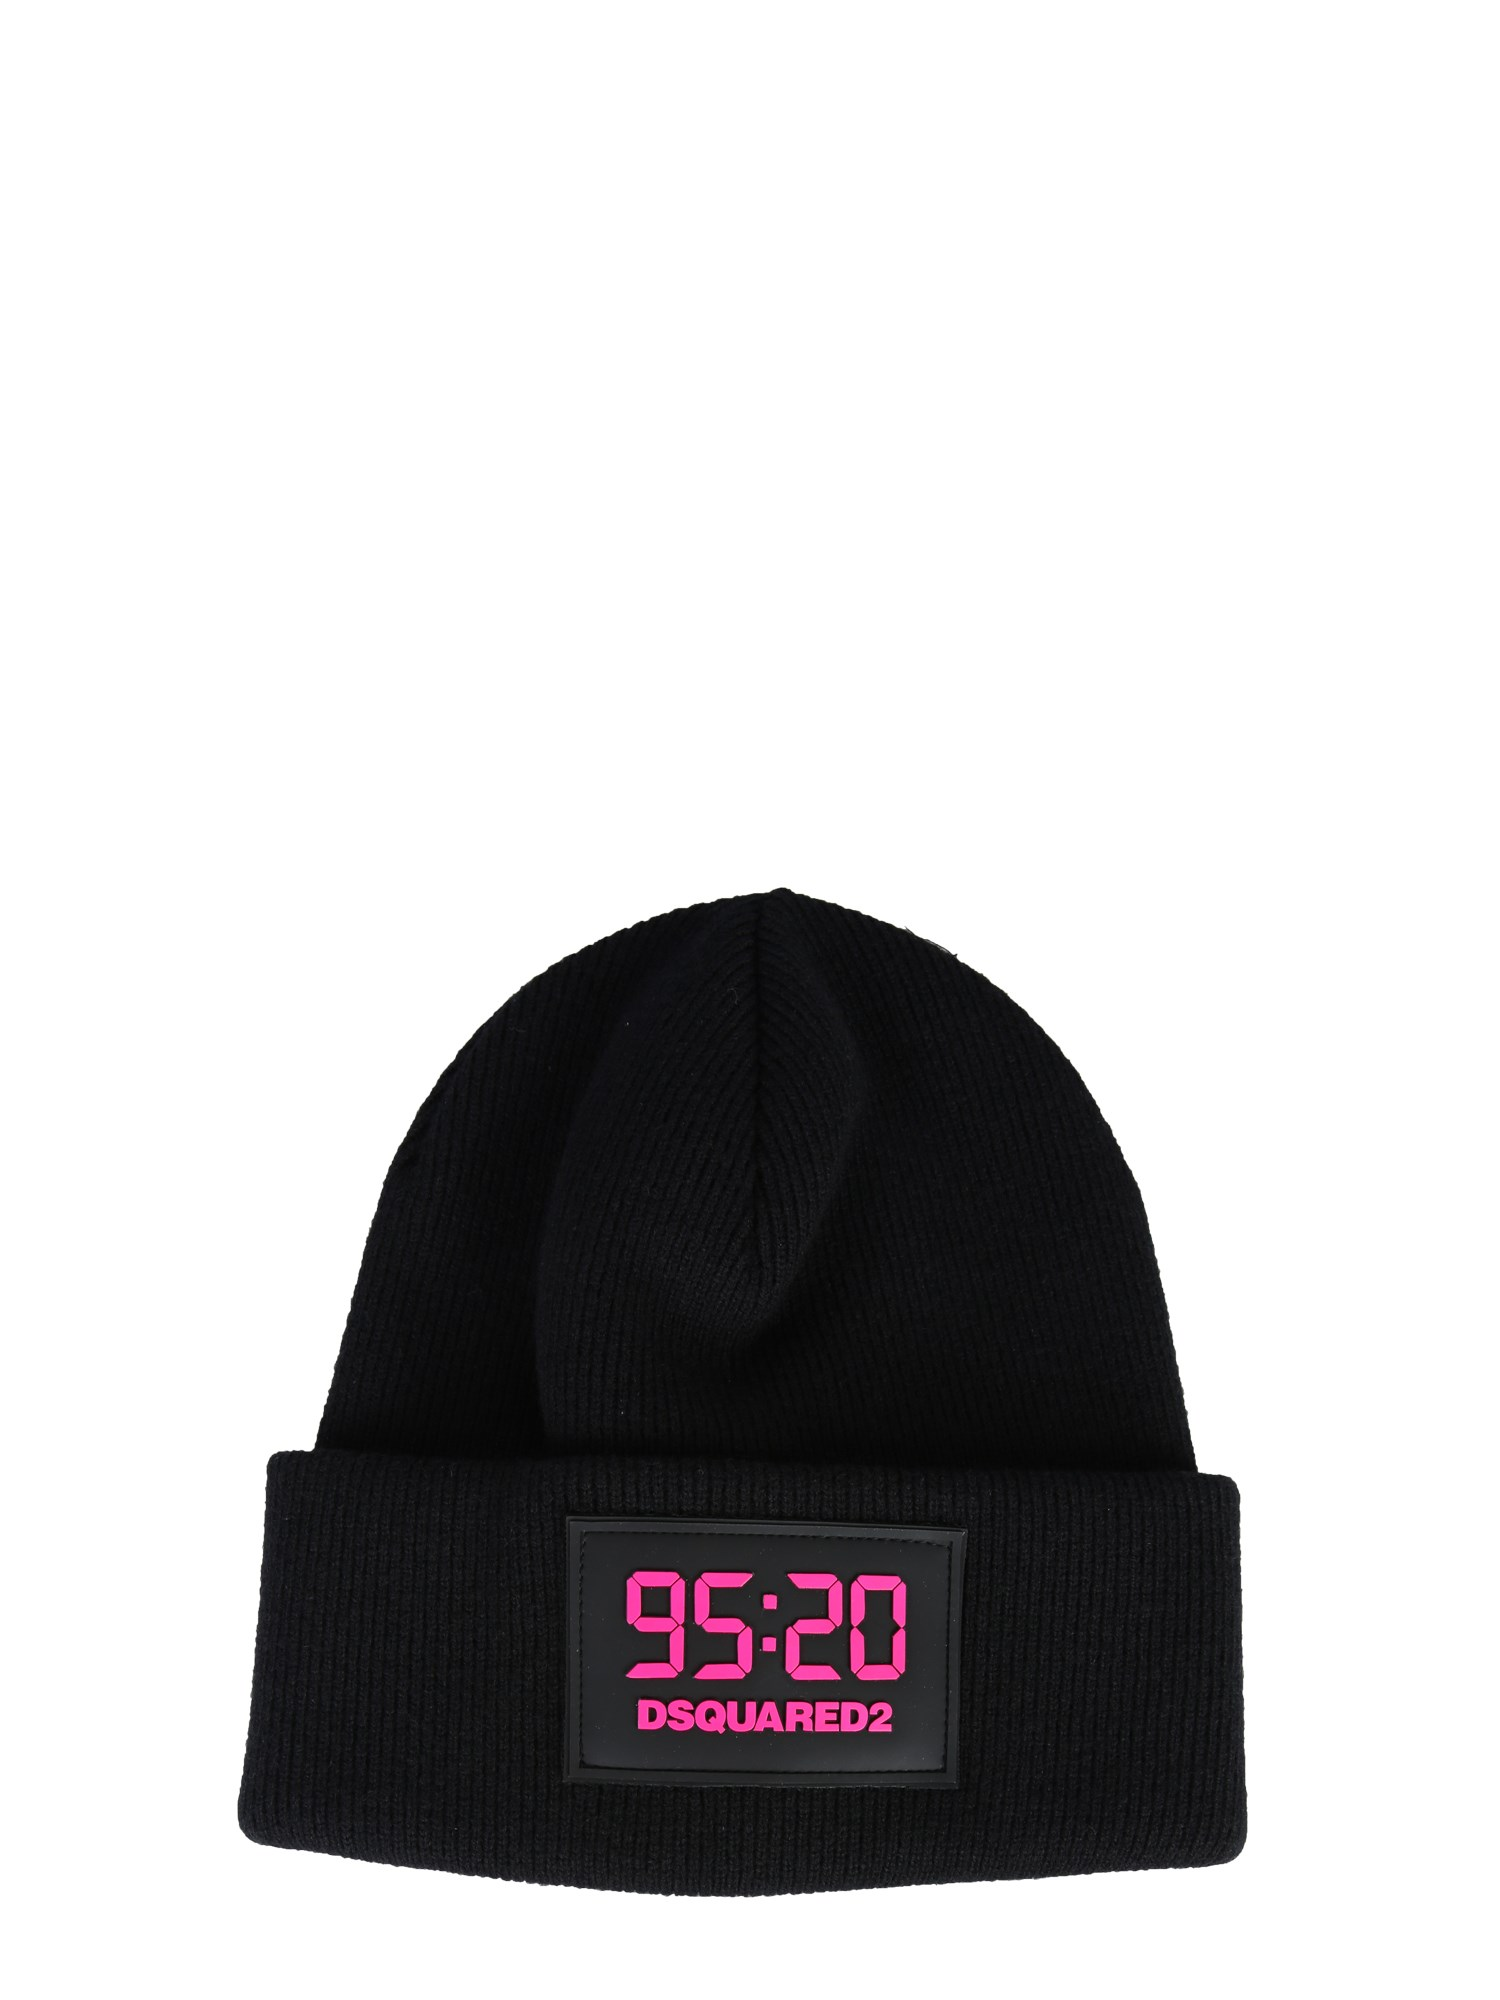 Dsquared2 Beanies BEANIE HAT